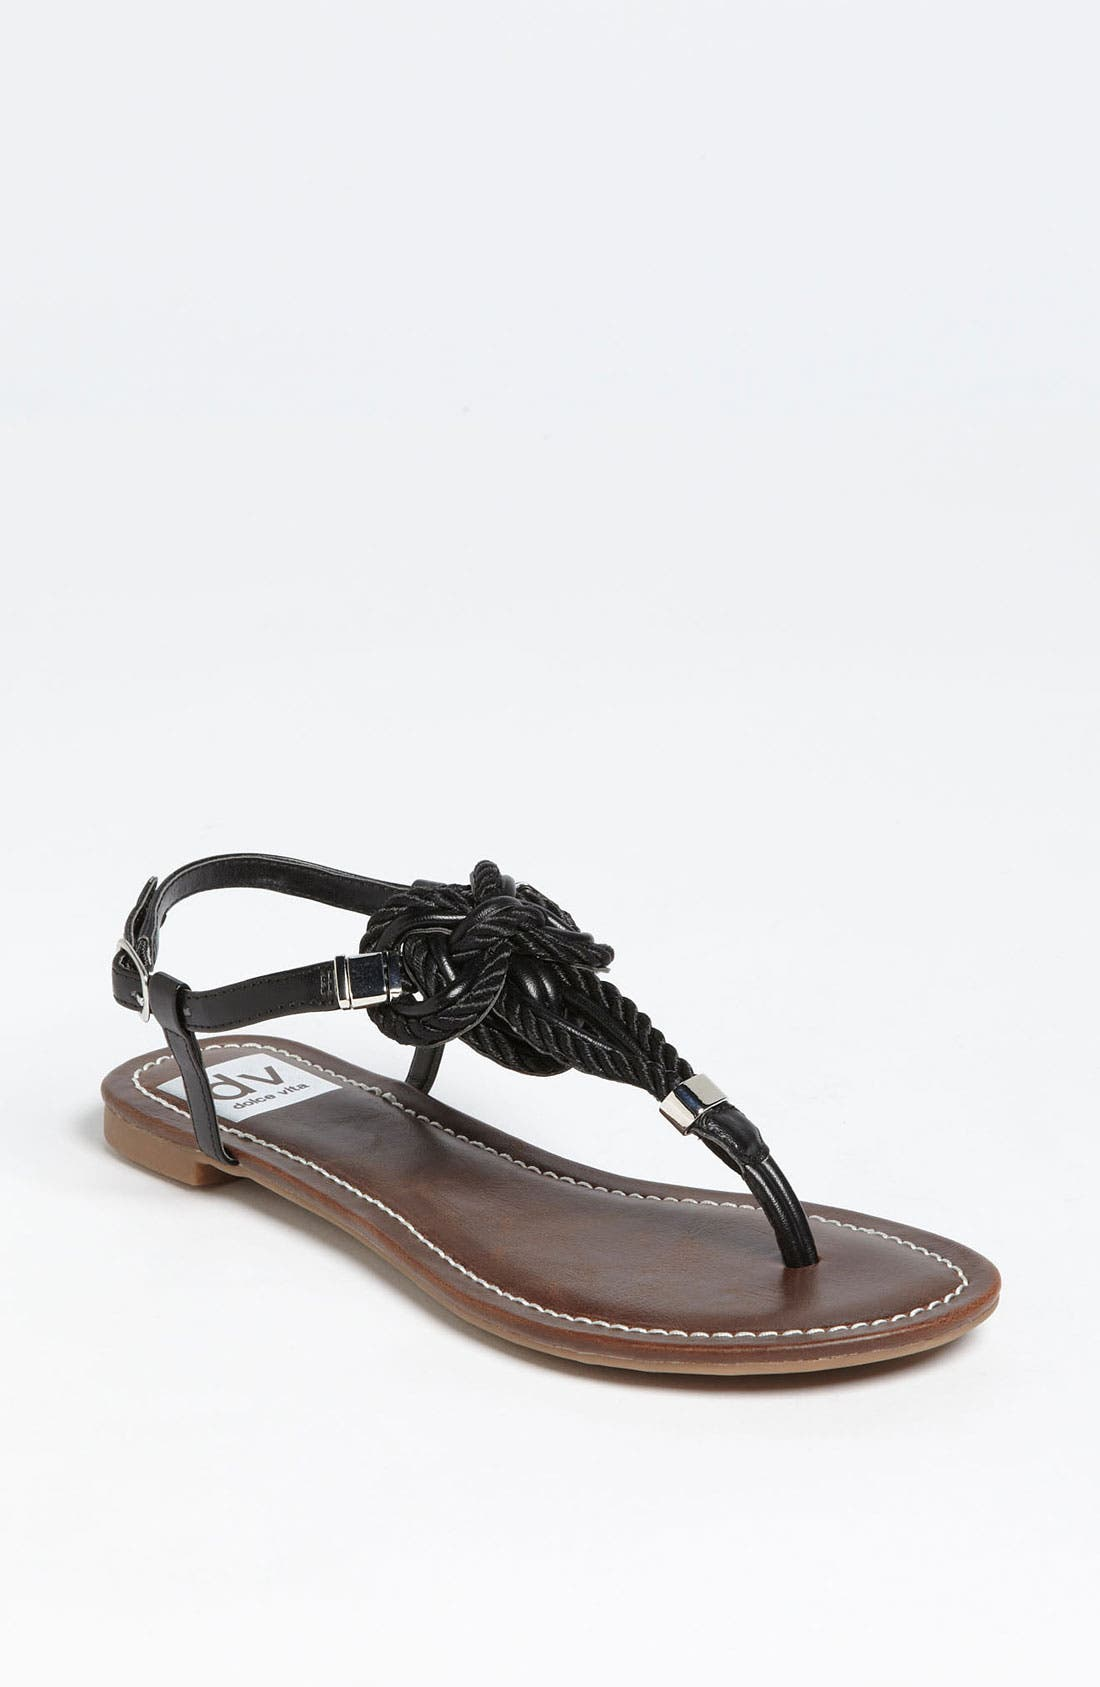 Alternate Image 1 Selected - DV by Dolce Vita 'Dizzy' Sandal (Online Only)